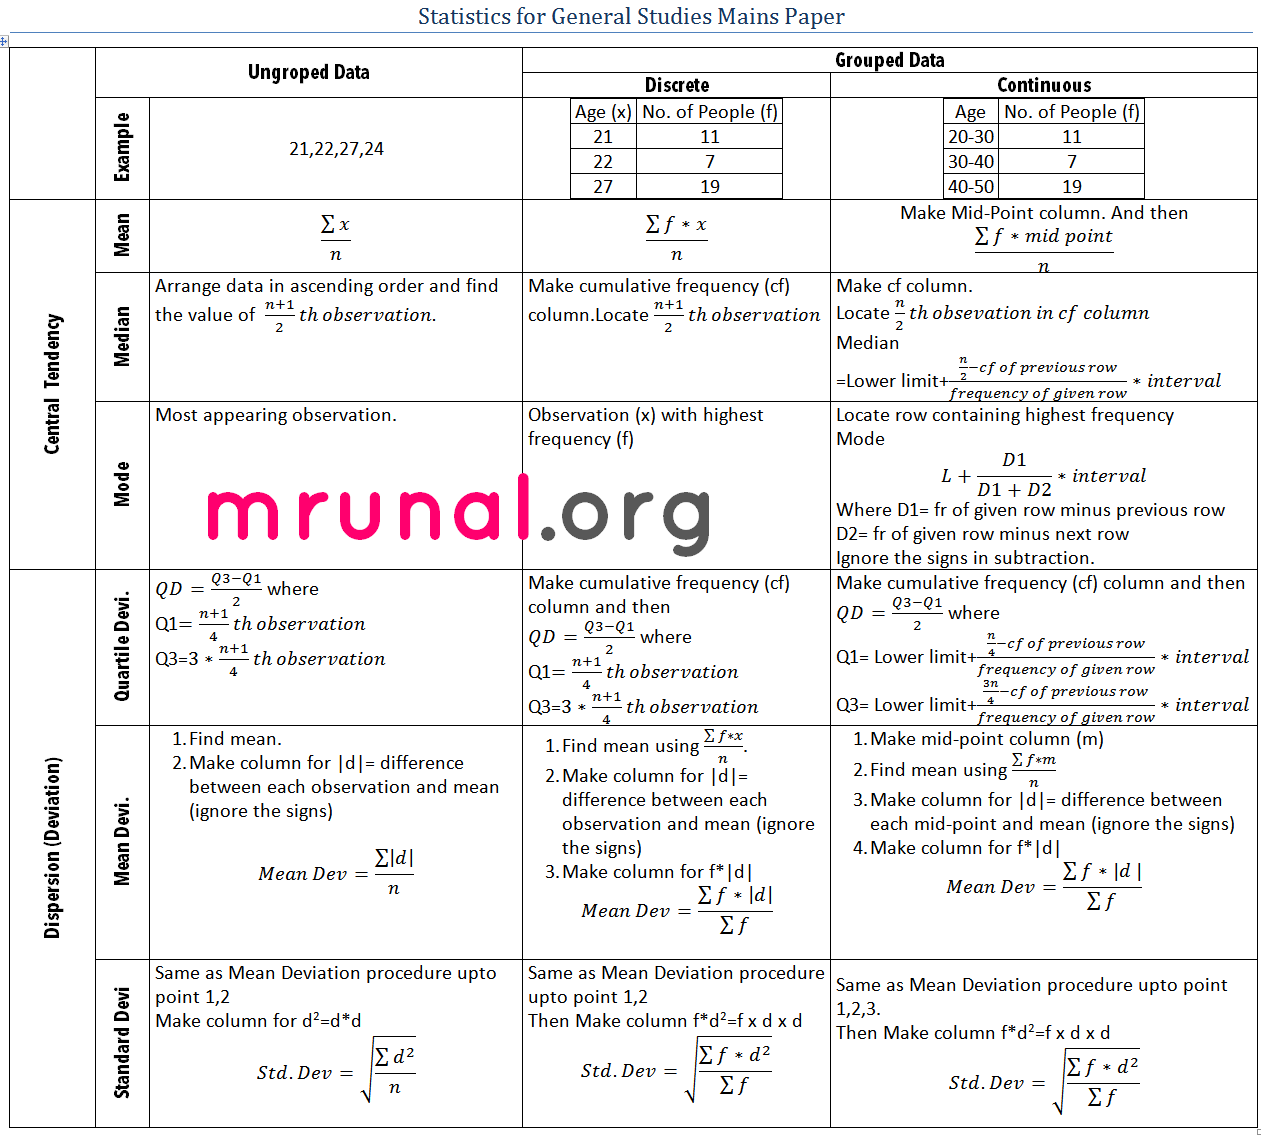 [statistics For Gs] Continuous Data Series: Find Standard Deviation, Md,qd